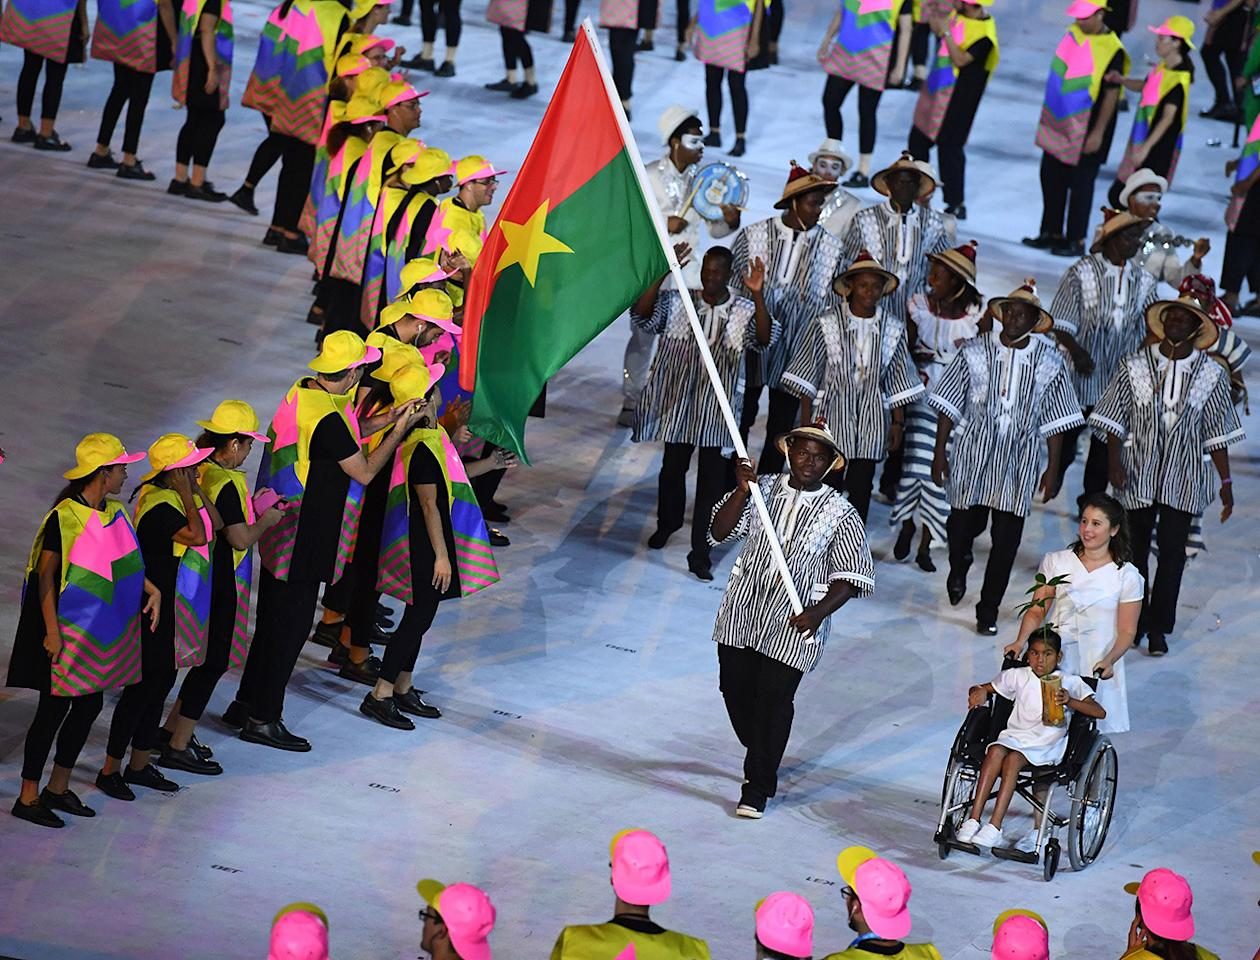 <p>Hands down, this might be the best Opening Ceremony outfit of the night. It ticked not one, not two, but <i>three</i> of fashion's favorite tropes: the stripes, the tunic shape, and the street style-worthy hat. And as a bonus, intricate prints and detailing.</p><p><i>(Photo: Getty Images)</i><br /></p>